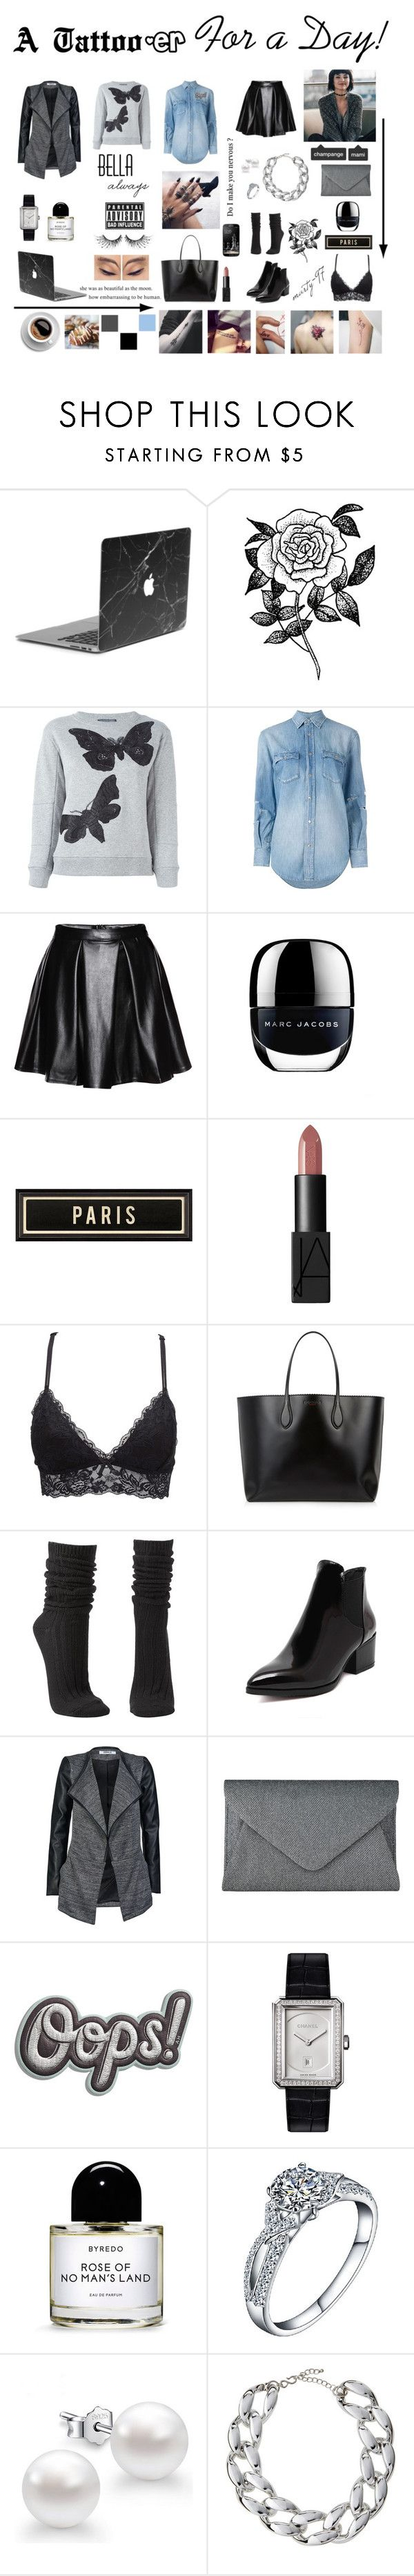 A Tattooer for a Day! by marty-97 on Polyvore featuring moda, Alexander McQueen, Yves Saint Laurent, ONLY, Charlotte Russe, Rochas, John Lewis, Anya Hindmarch, Kenneth Jay Lane and Chanel